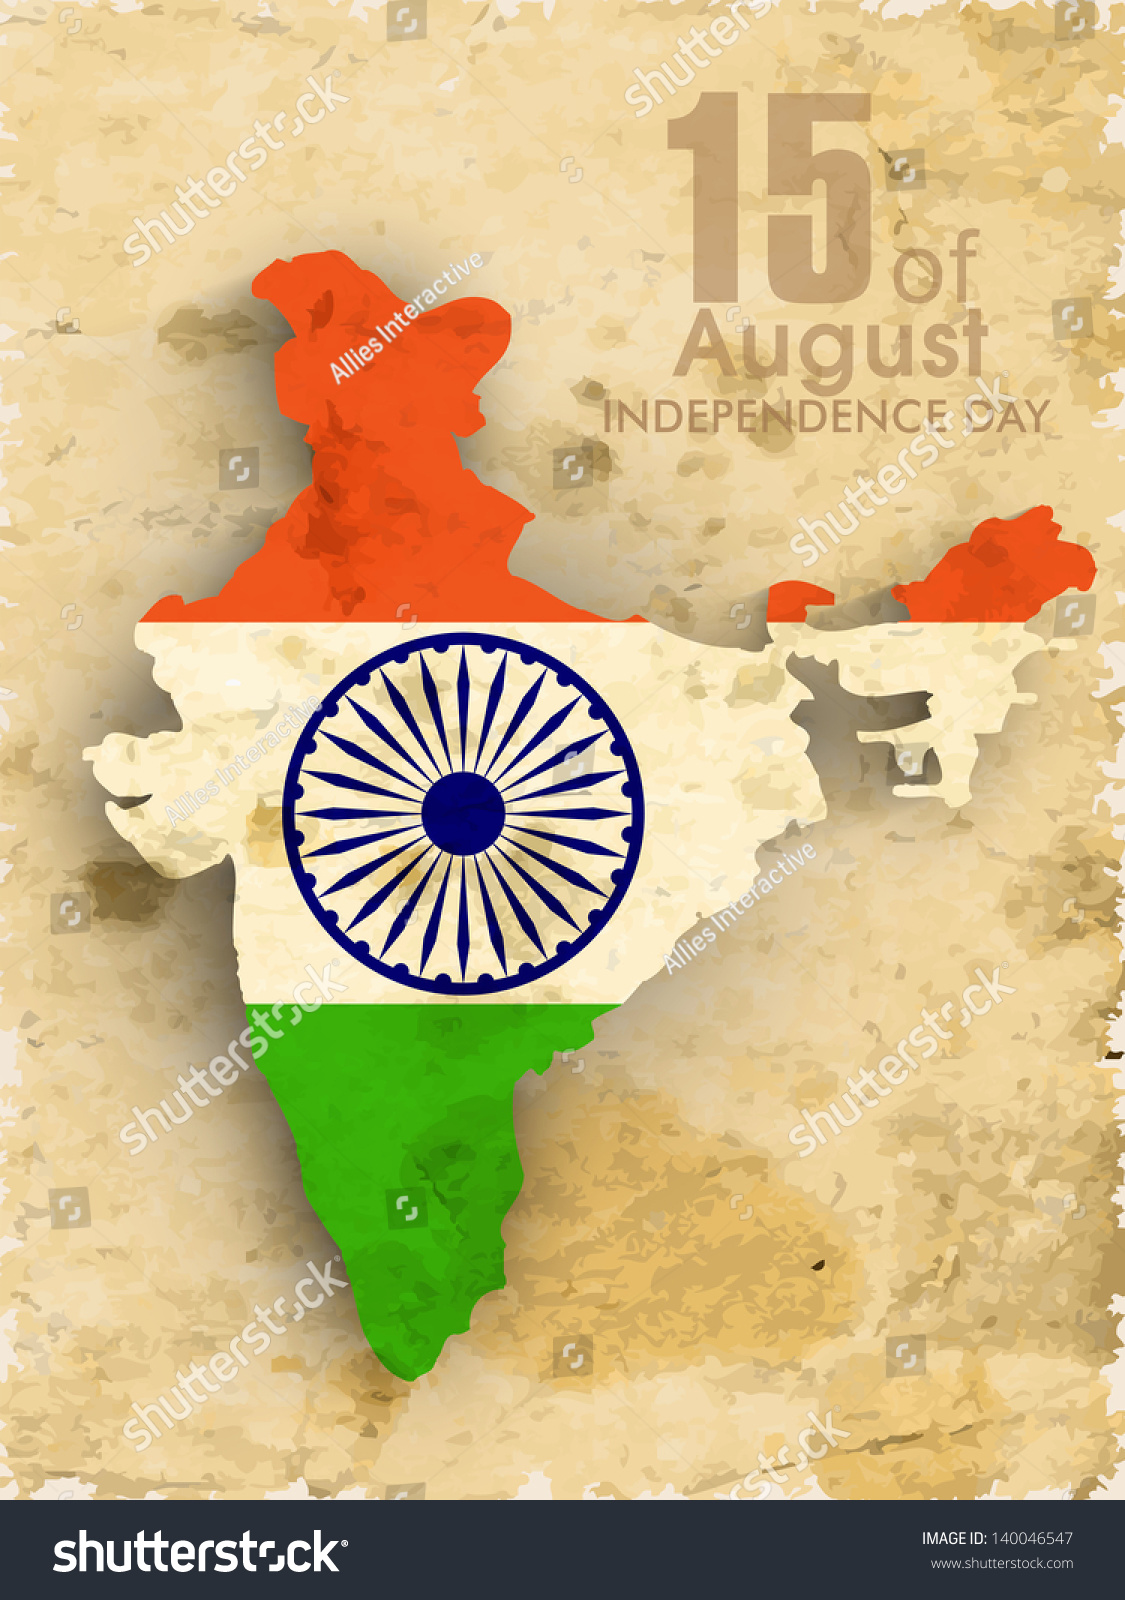 Colors website ashoka - Republic Of India Map In National Flag Colors With Text Ashoka Wheel On Grungy Brown Background